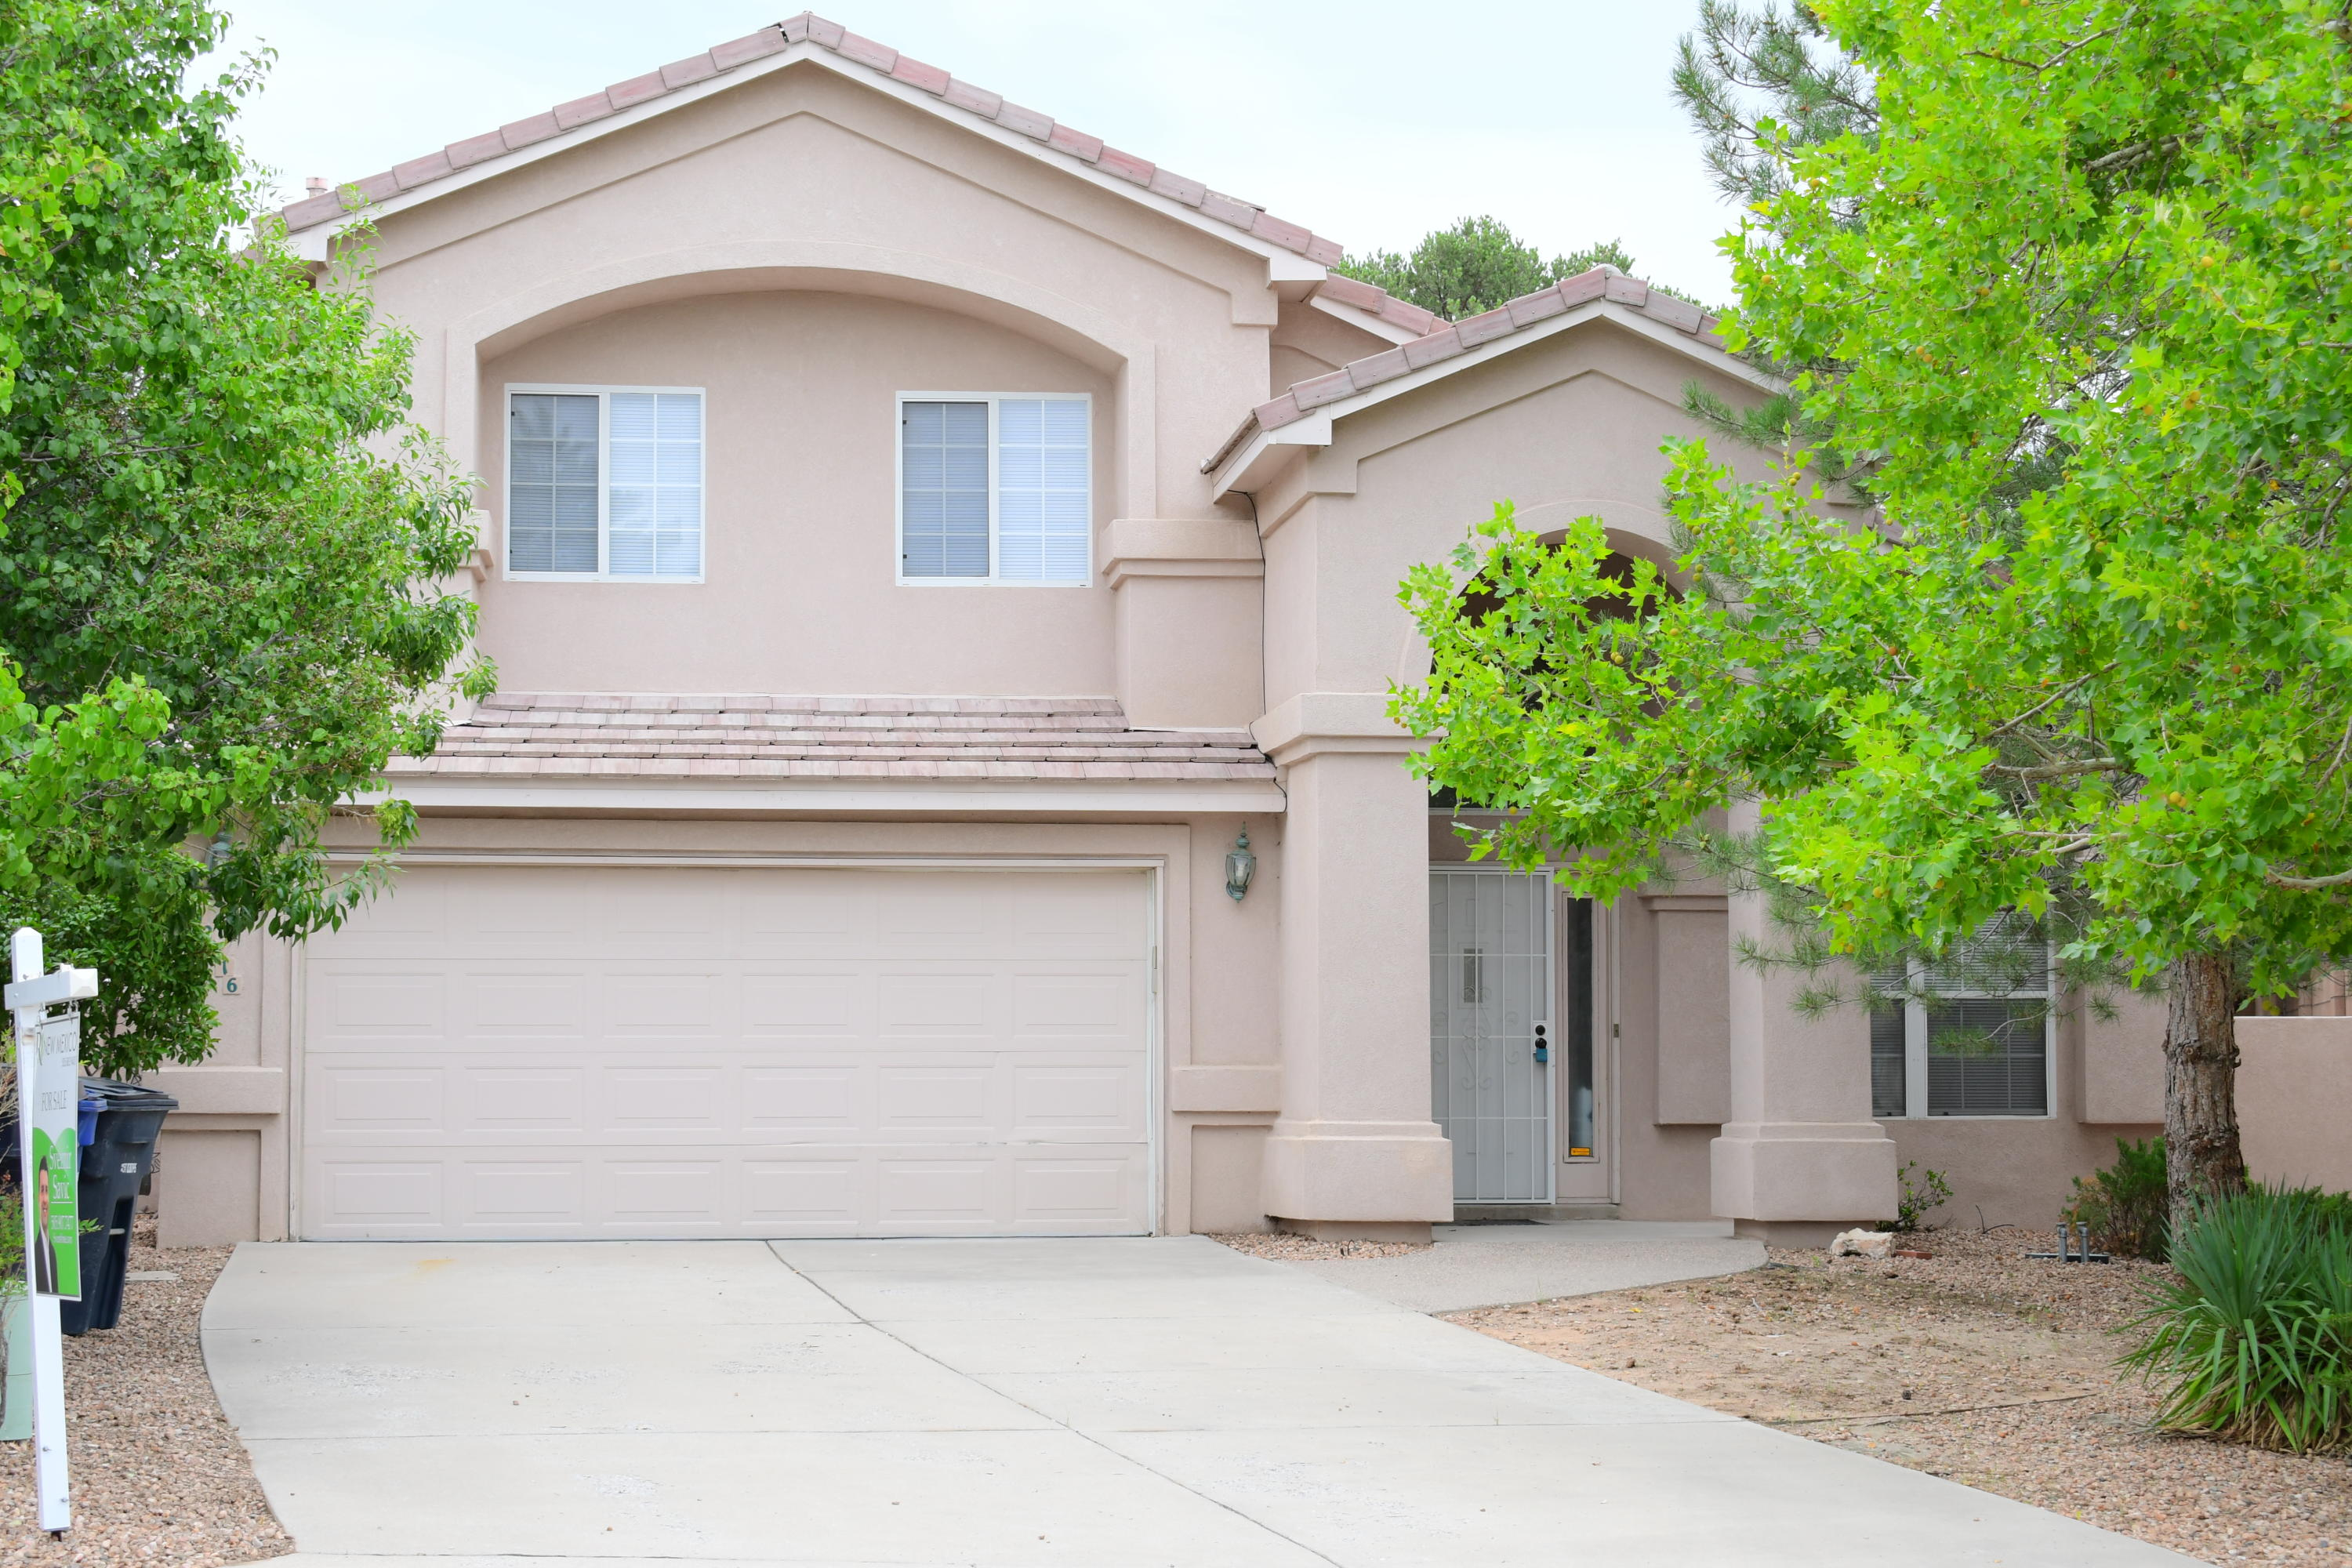 Prime location, convenient and close to shopping centers, parks,  hiking and biking trails. Home has brand new carpet, new paint, new patio doors, complete roof maintenance, new tiles in the master bath and much more.  Home features  high ceilings, 4 bedrooms, two living areas, 3 bathrooms, gas fireplace and much more.